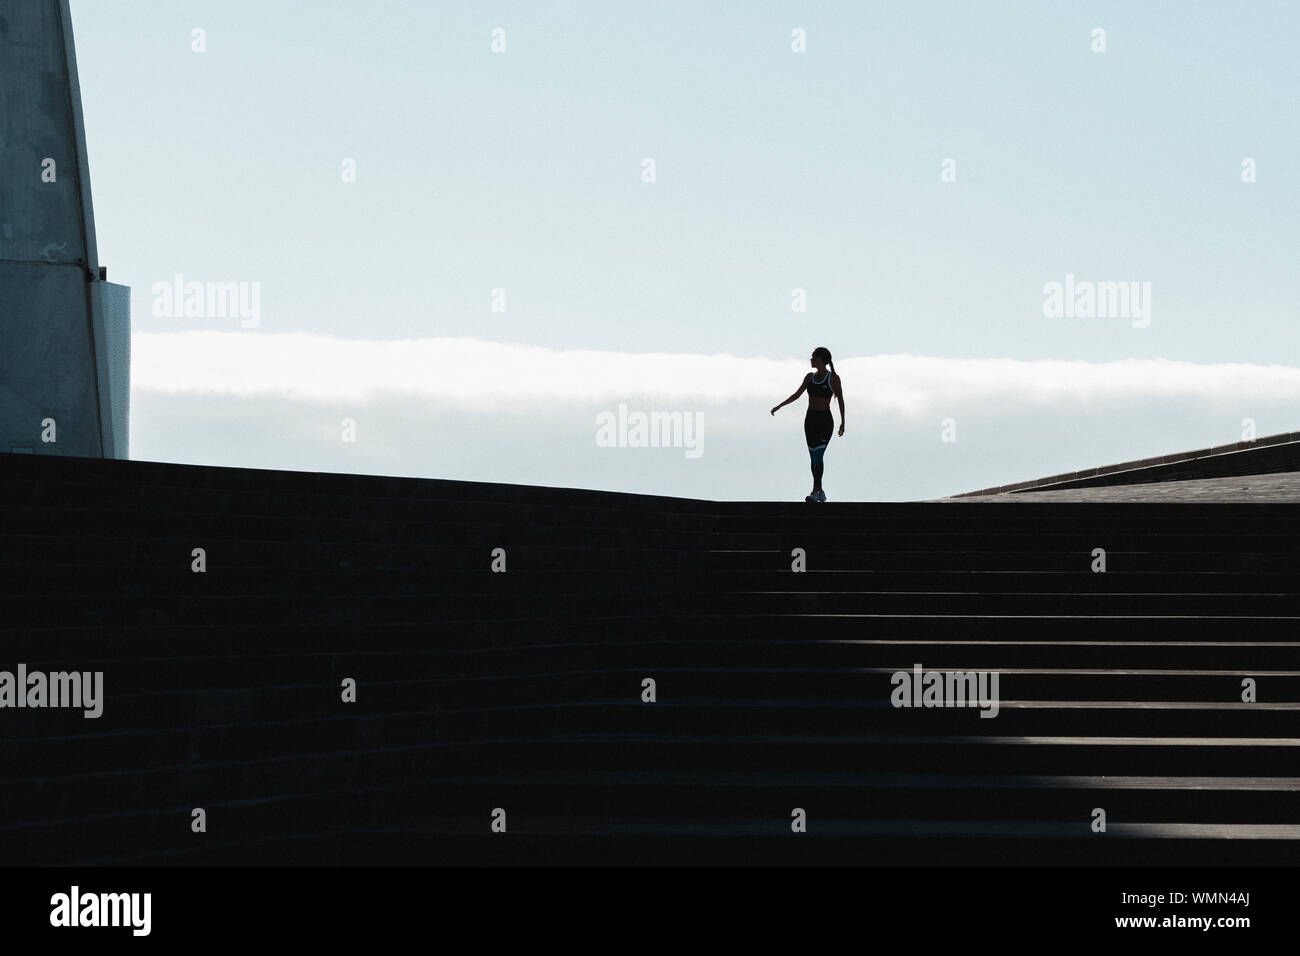 Silhouette of woman walking on stairs with blue sky in background Stock Photo